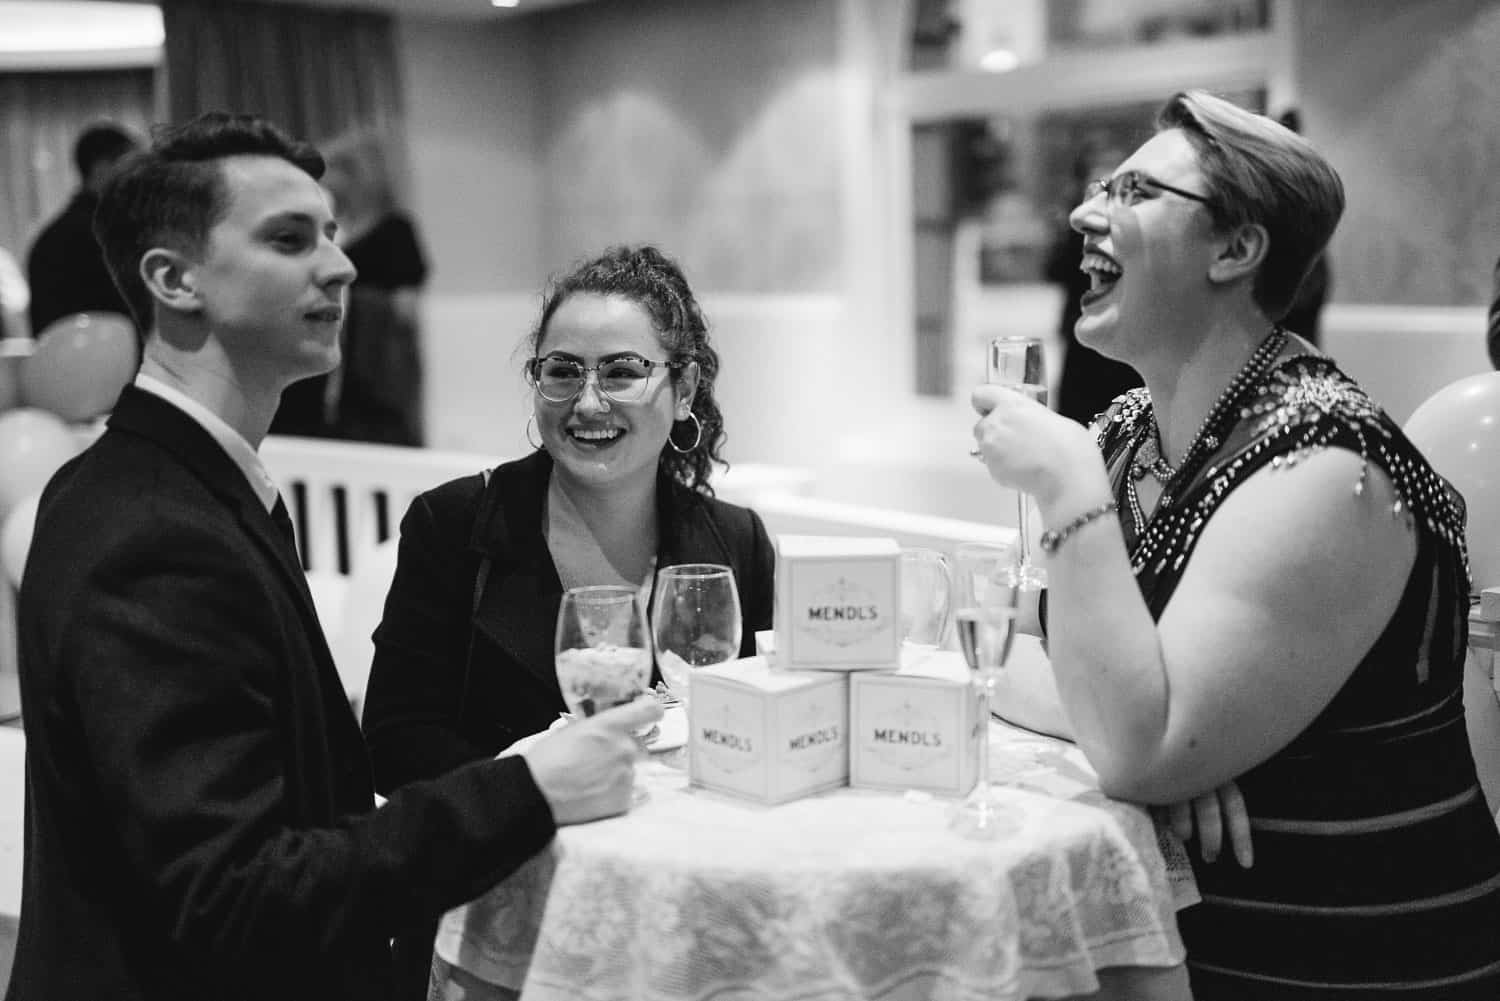 Laughing guests at Mendl's